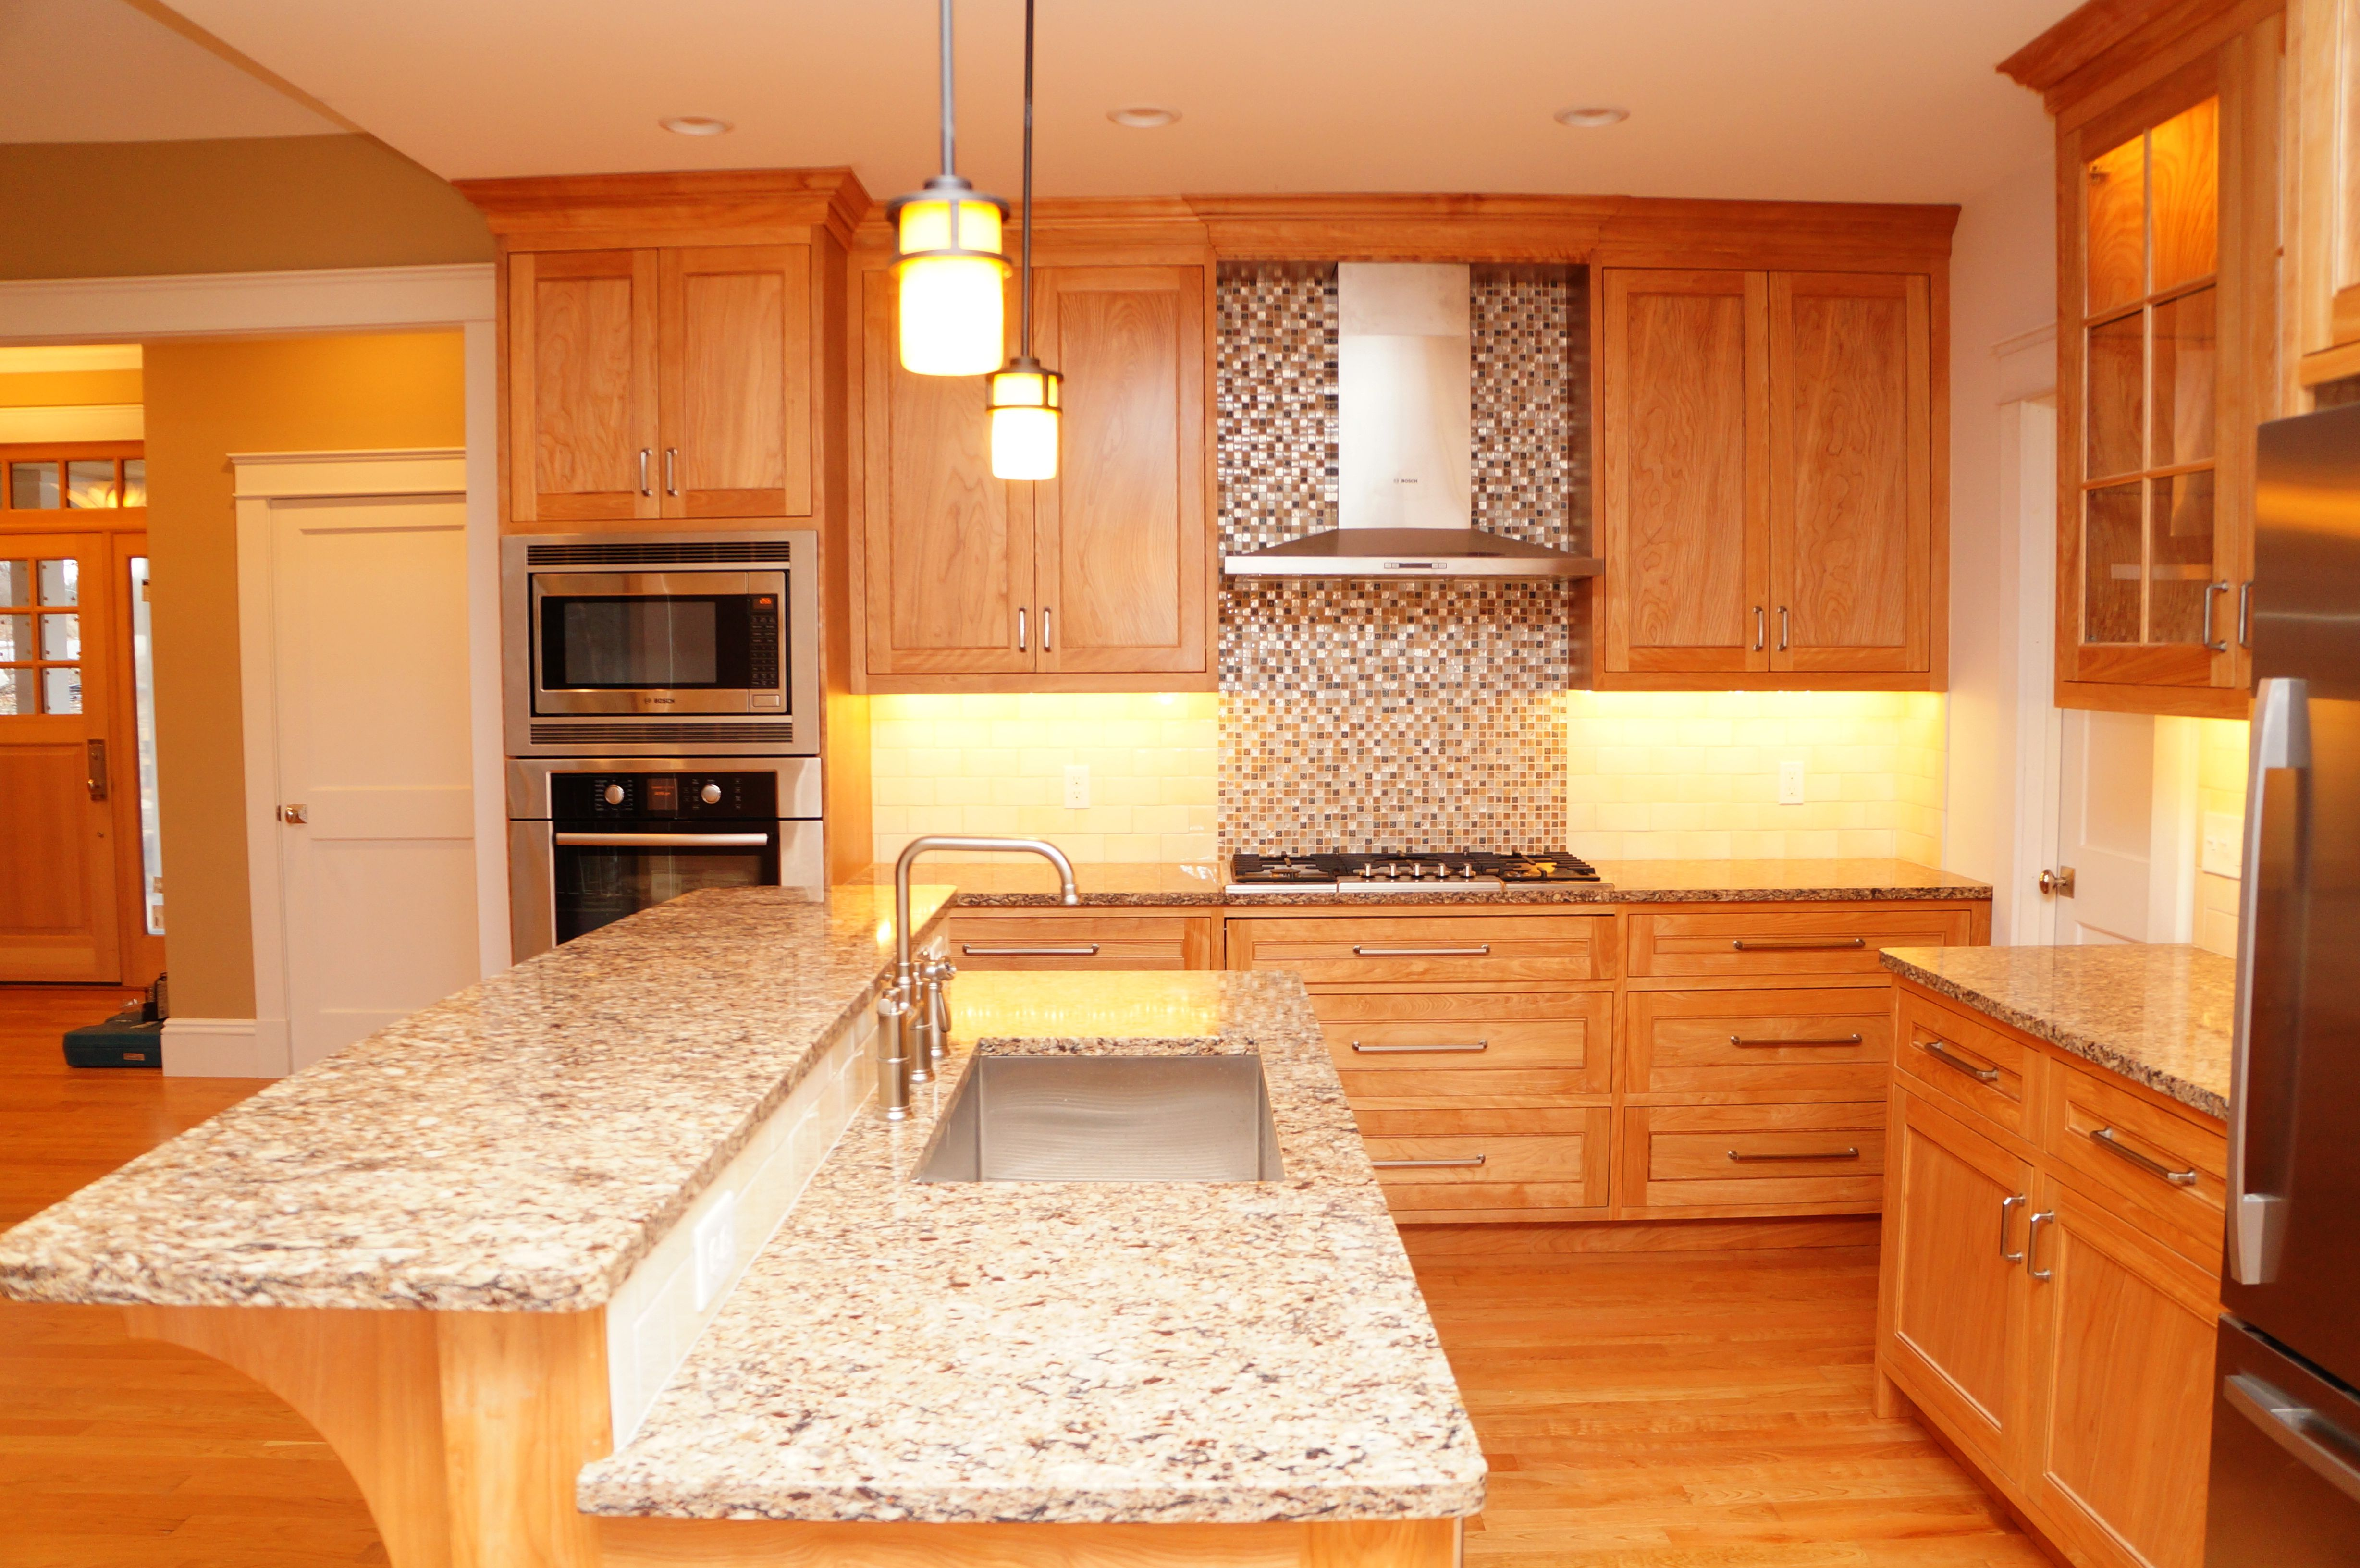 Red Birch Kitchen Handcrafted By Taylor Made Cabinets Leominster Ma Serving Machusetts For Fine